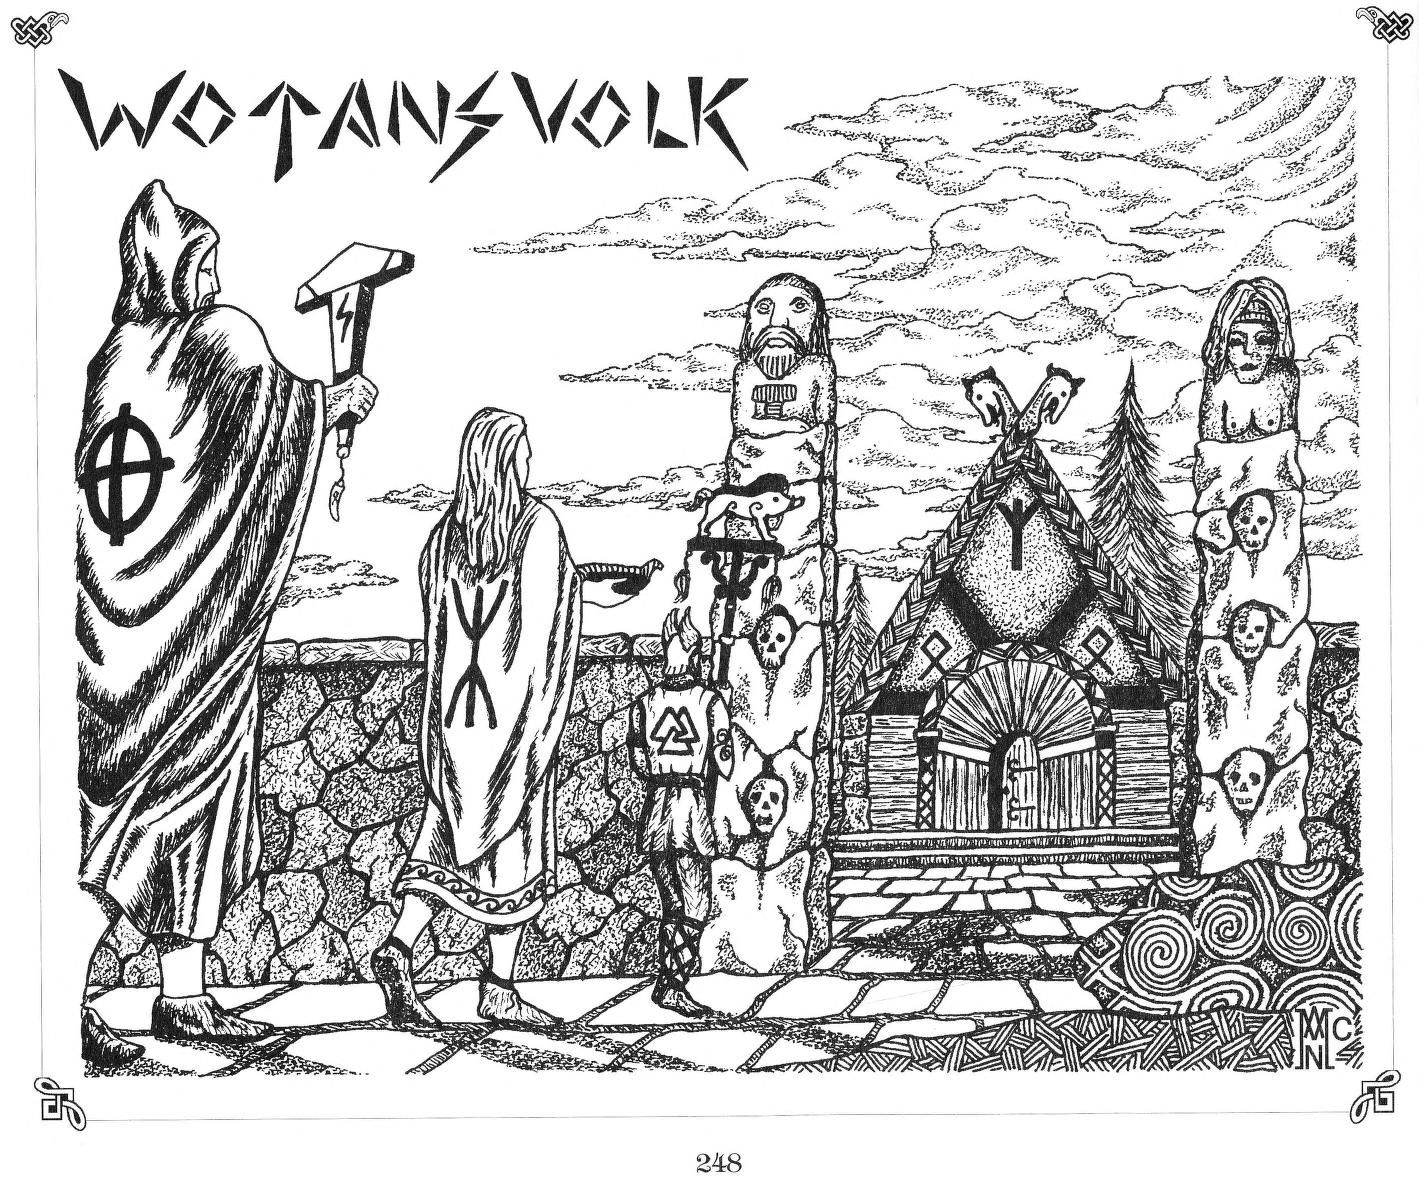 Temple of Wotan